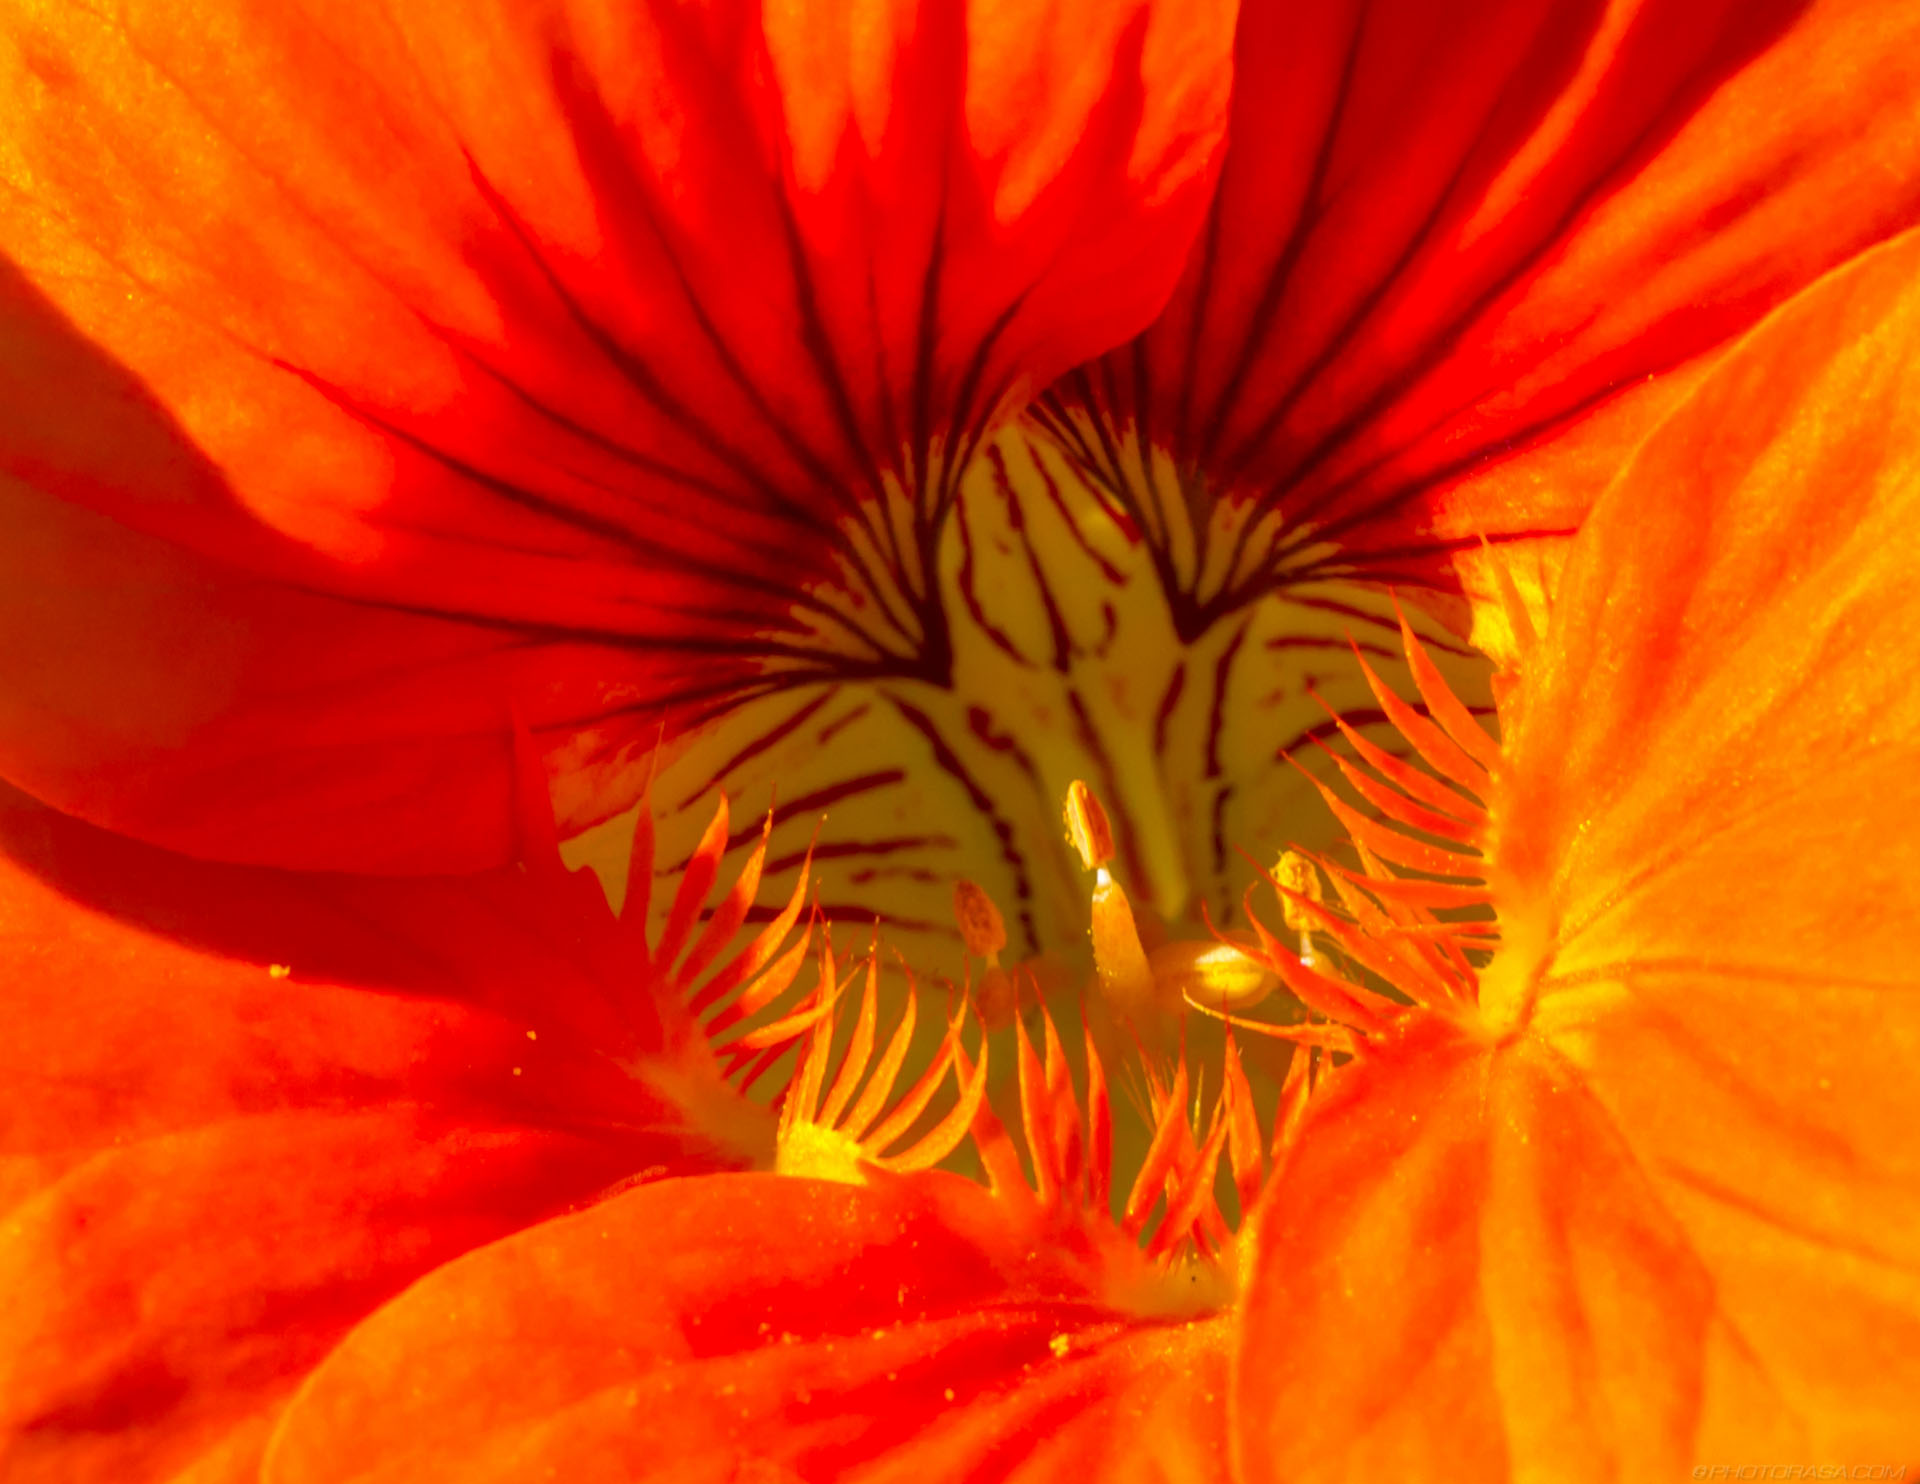 https://photorasa.com/strange-exotic-flowers/orange-striped-stamen/